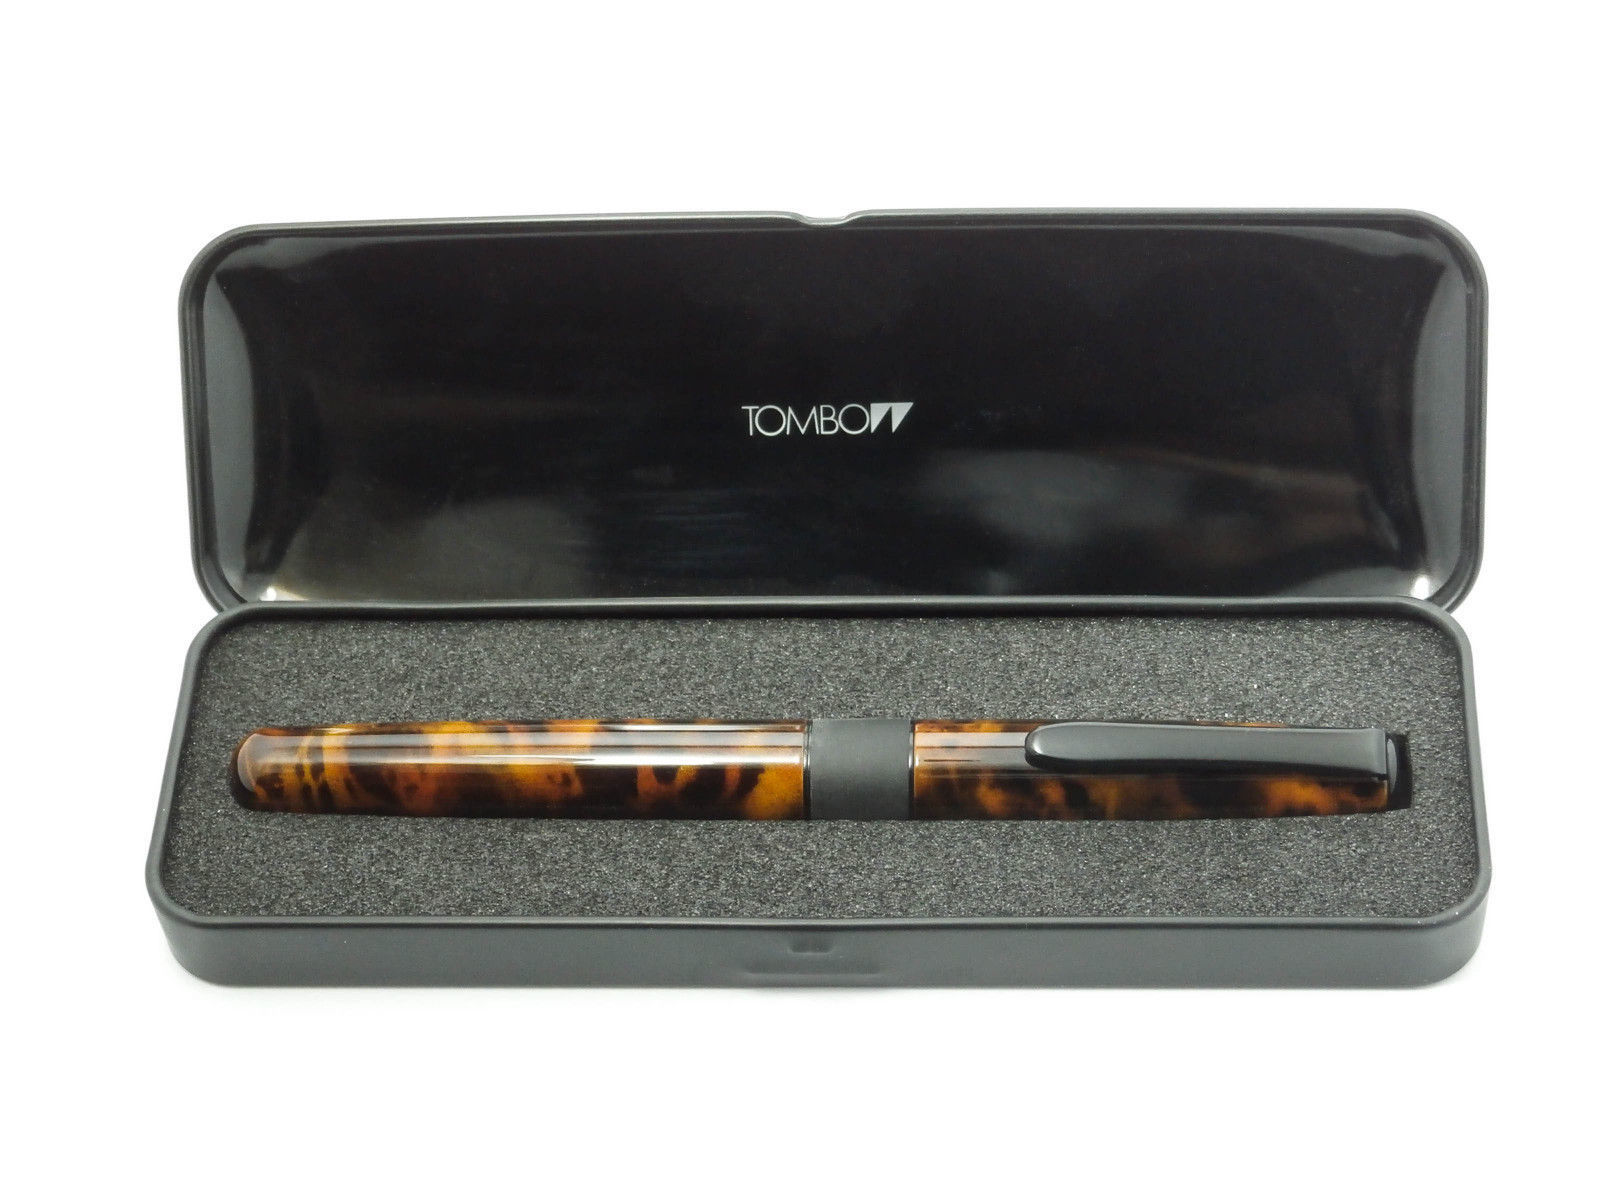 Tombow Zoom 503 - Marble designs - Rollerball Pen, Made in Japan, Free shipping! image 2